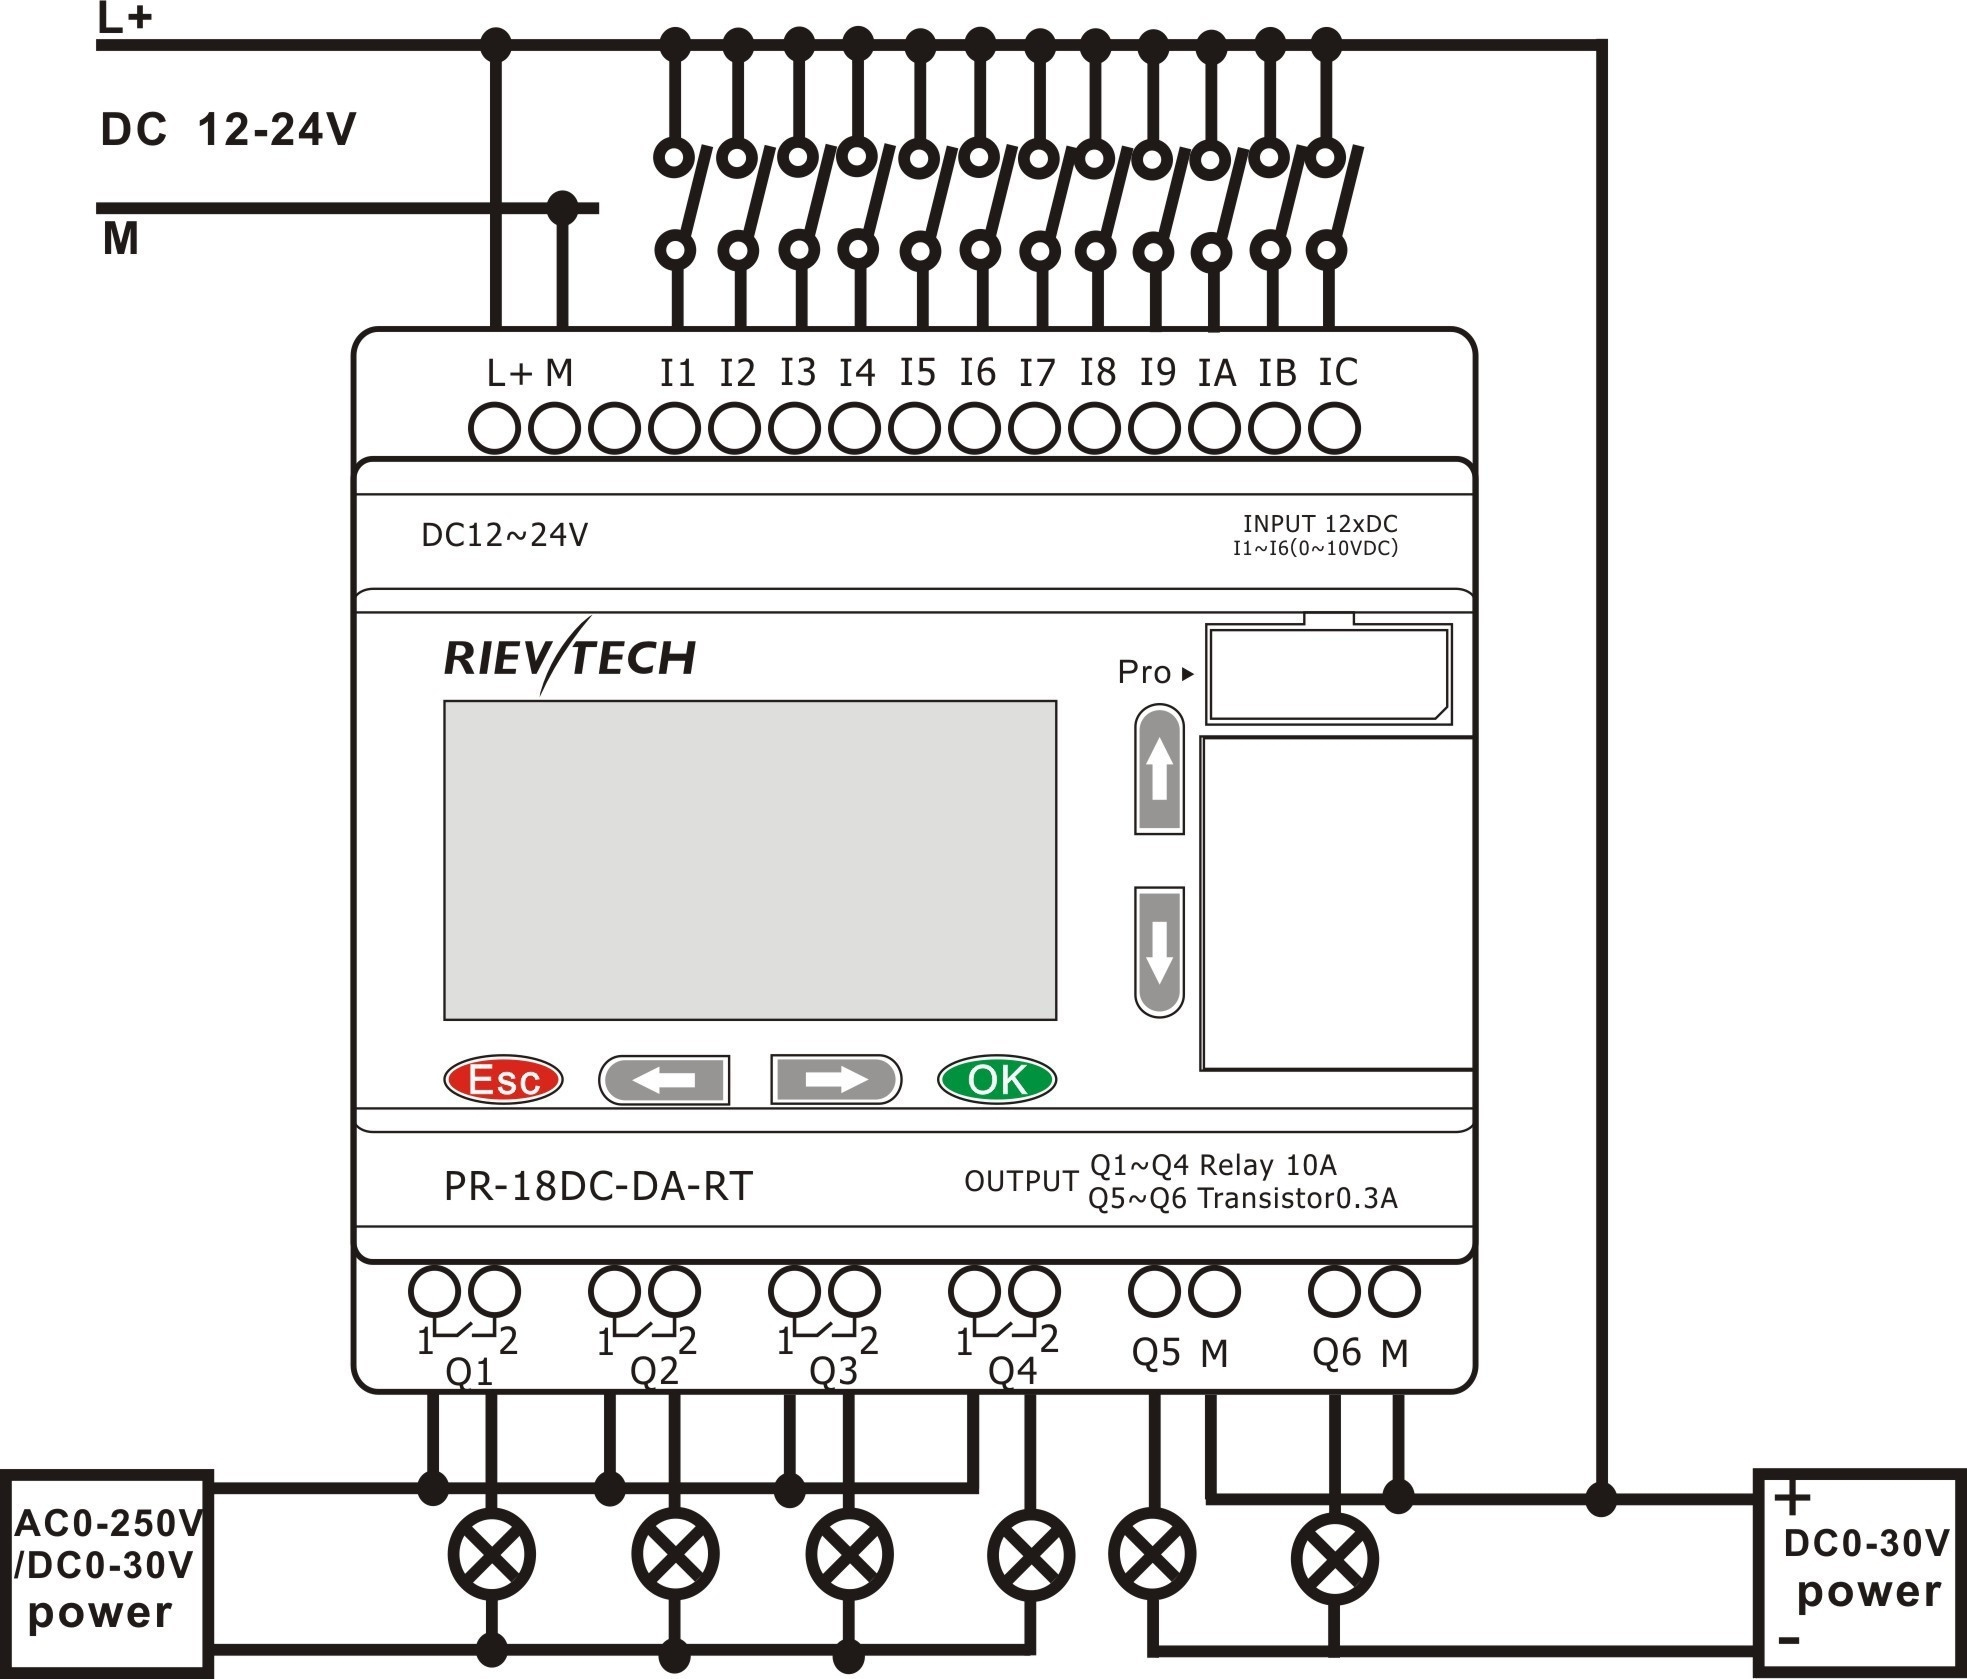 Plc Wiring Diagram Guide | Manual E-Books - Plc Wiring Diagram